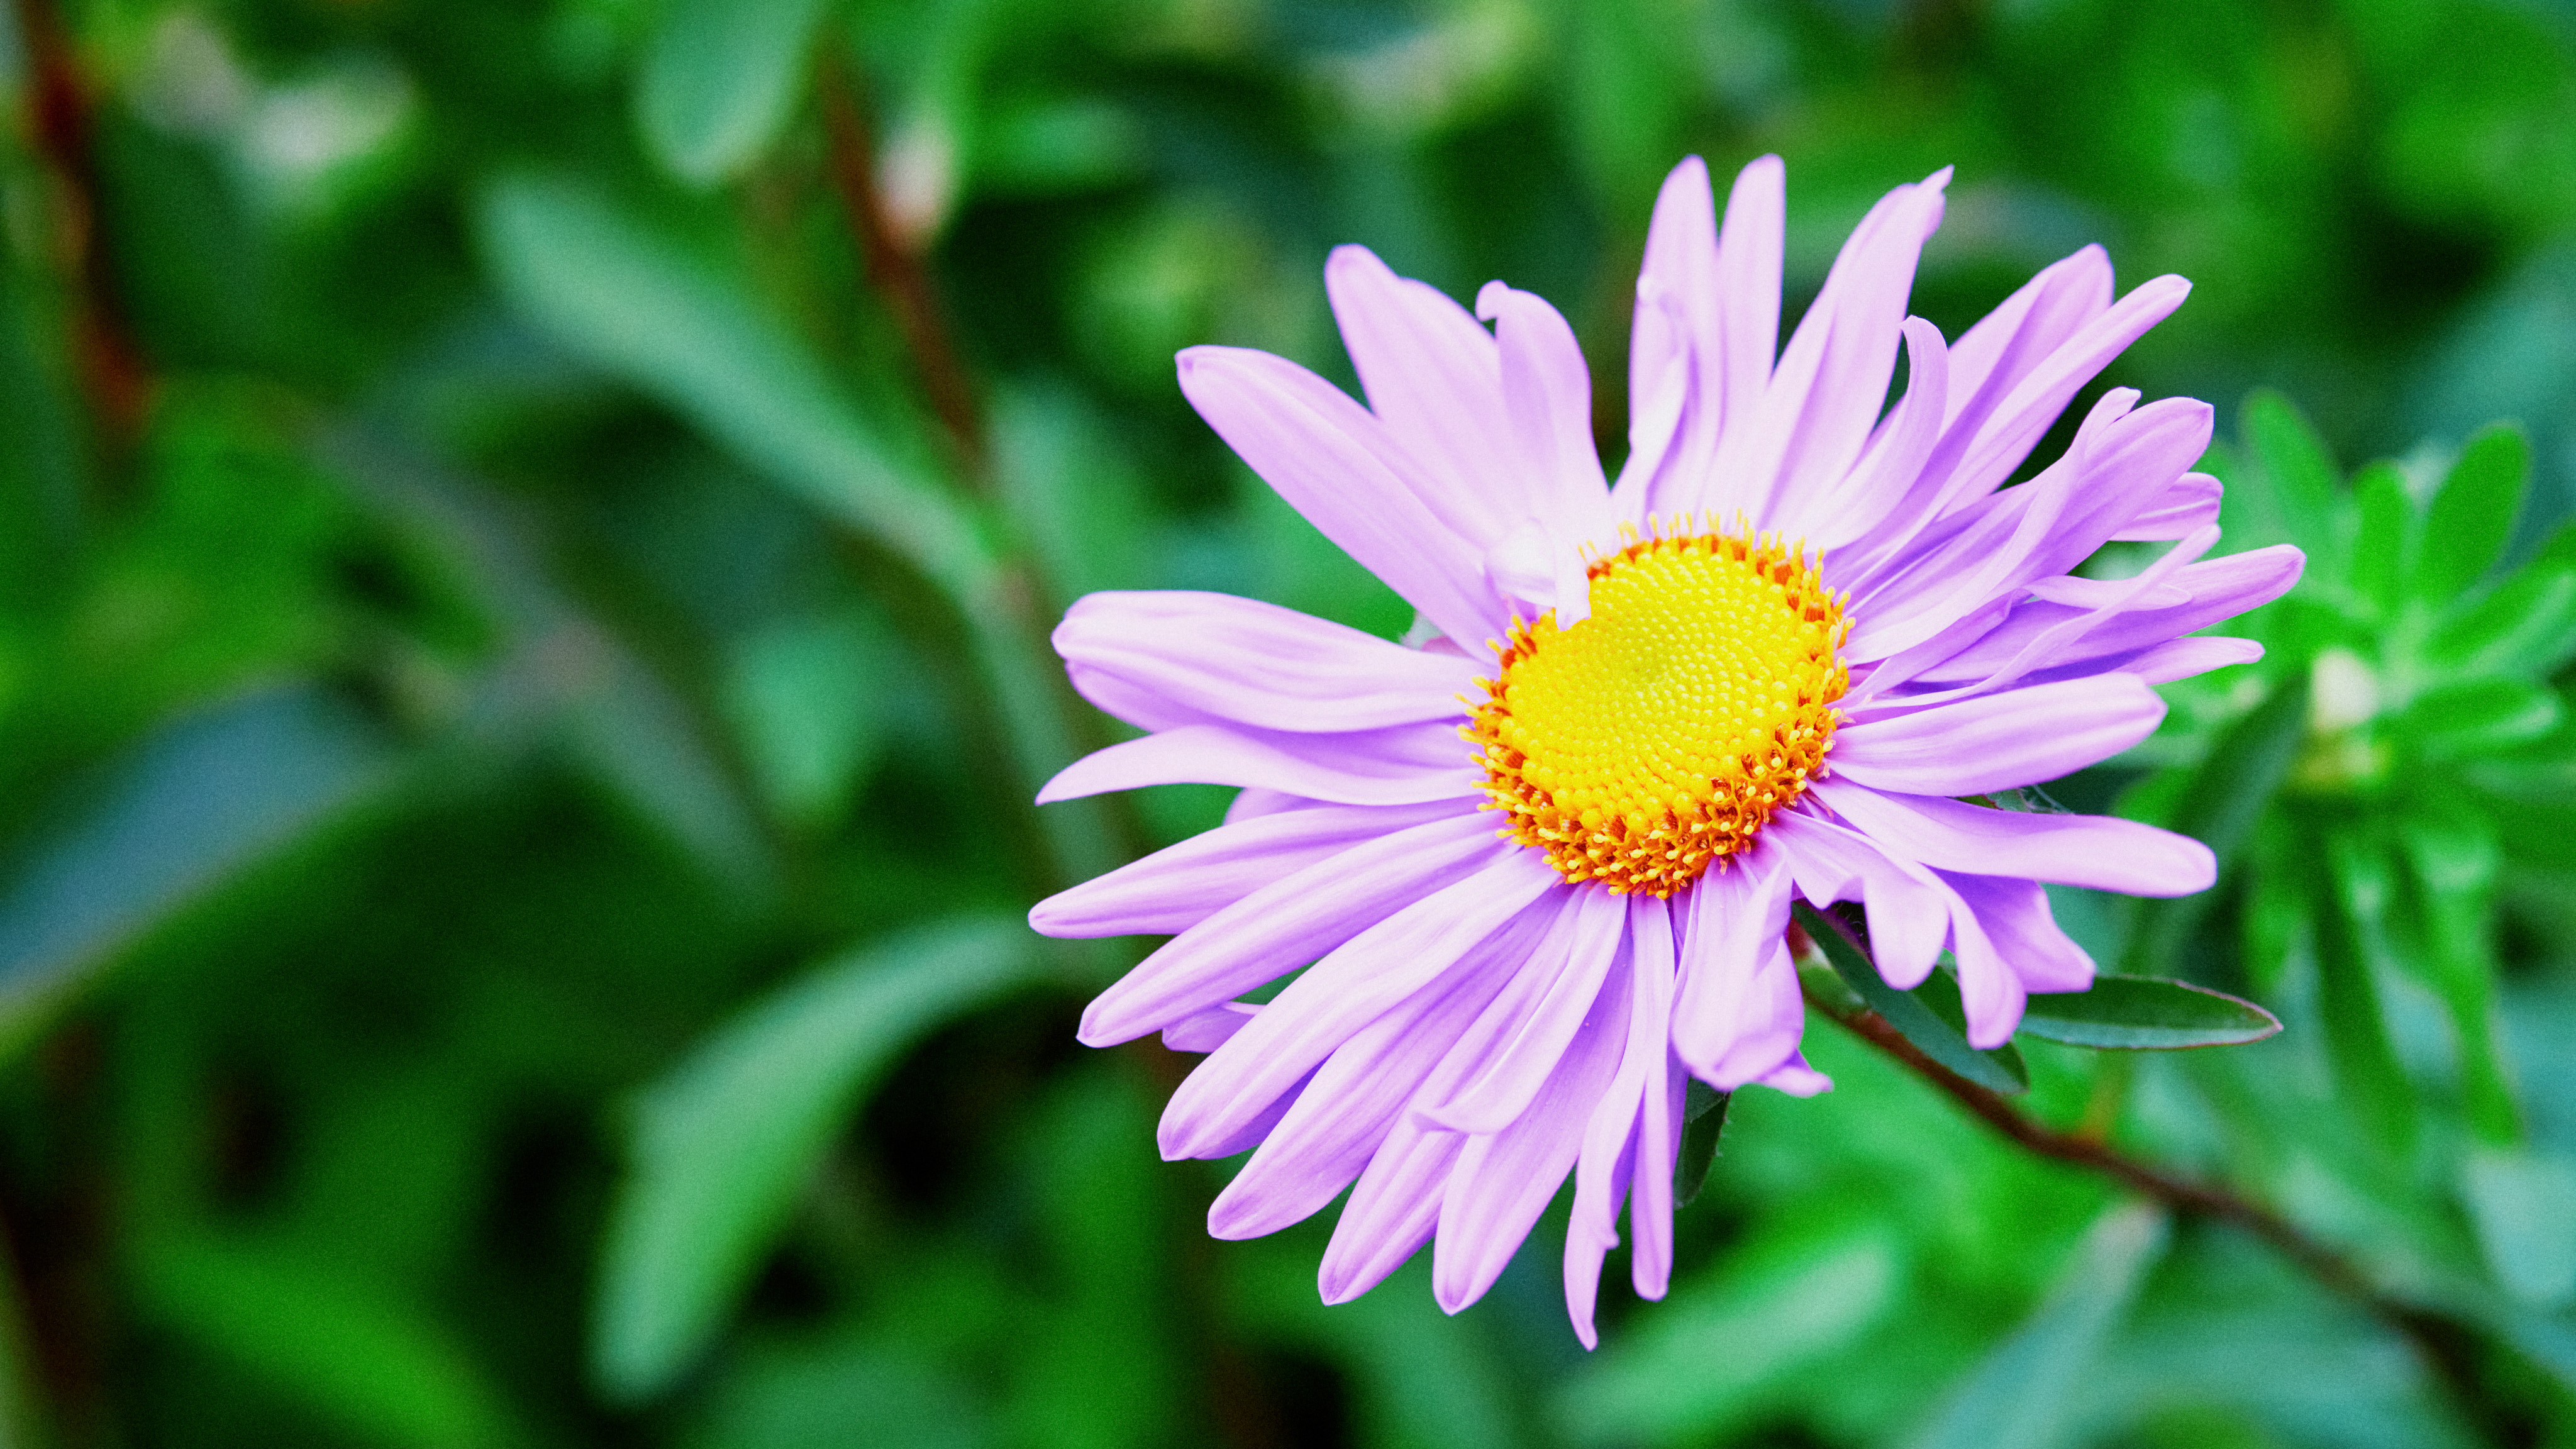 a purple flower against a green background